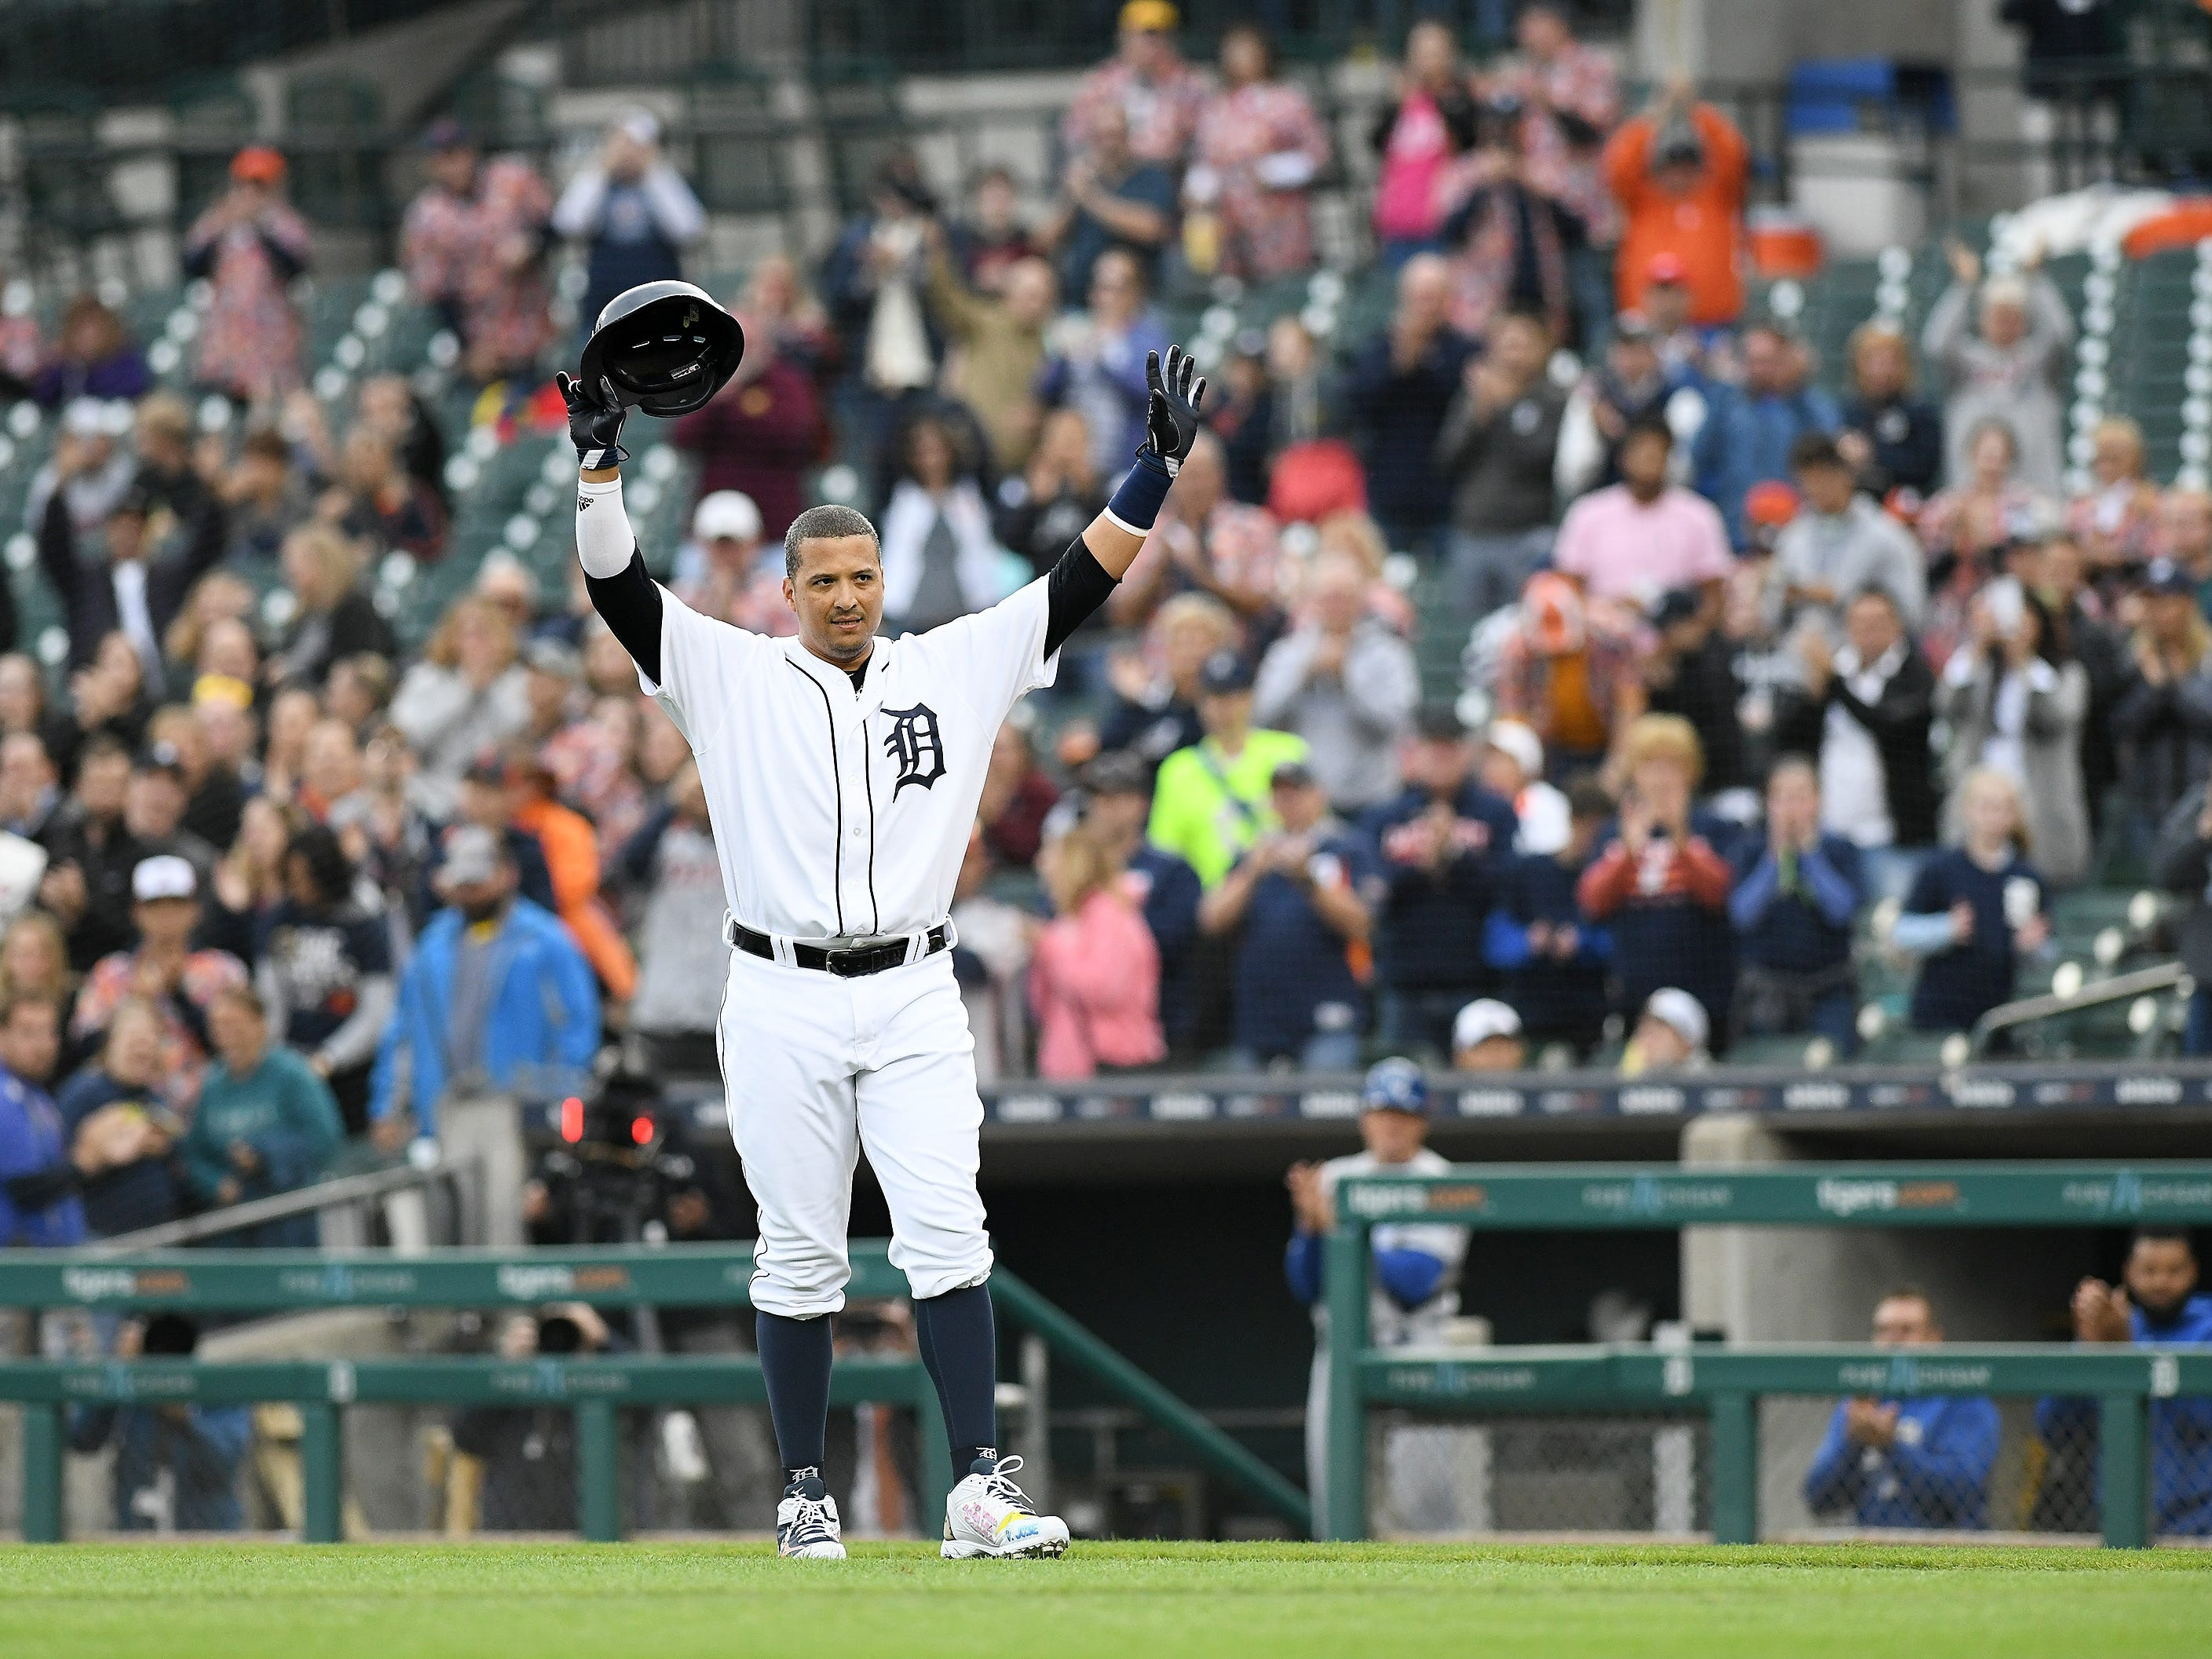 Tigers' Victor Martinez acknowledges the crowd as he comes out of the game for a pinch runner in the first inning.